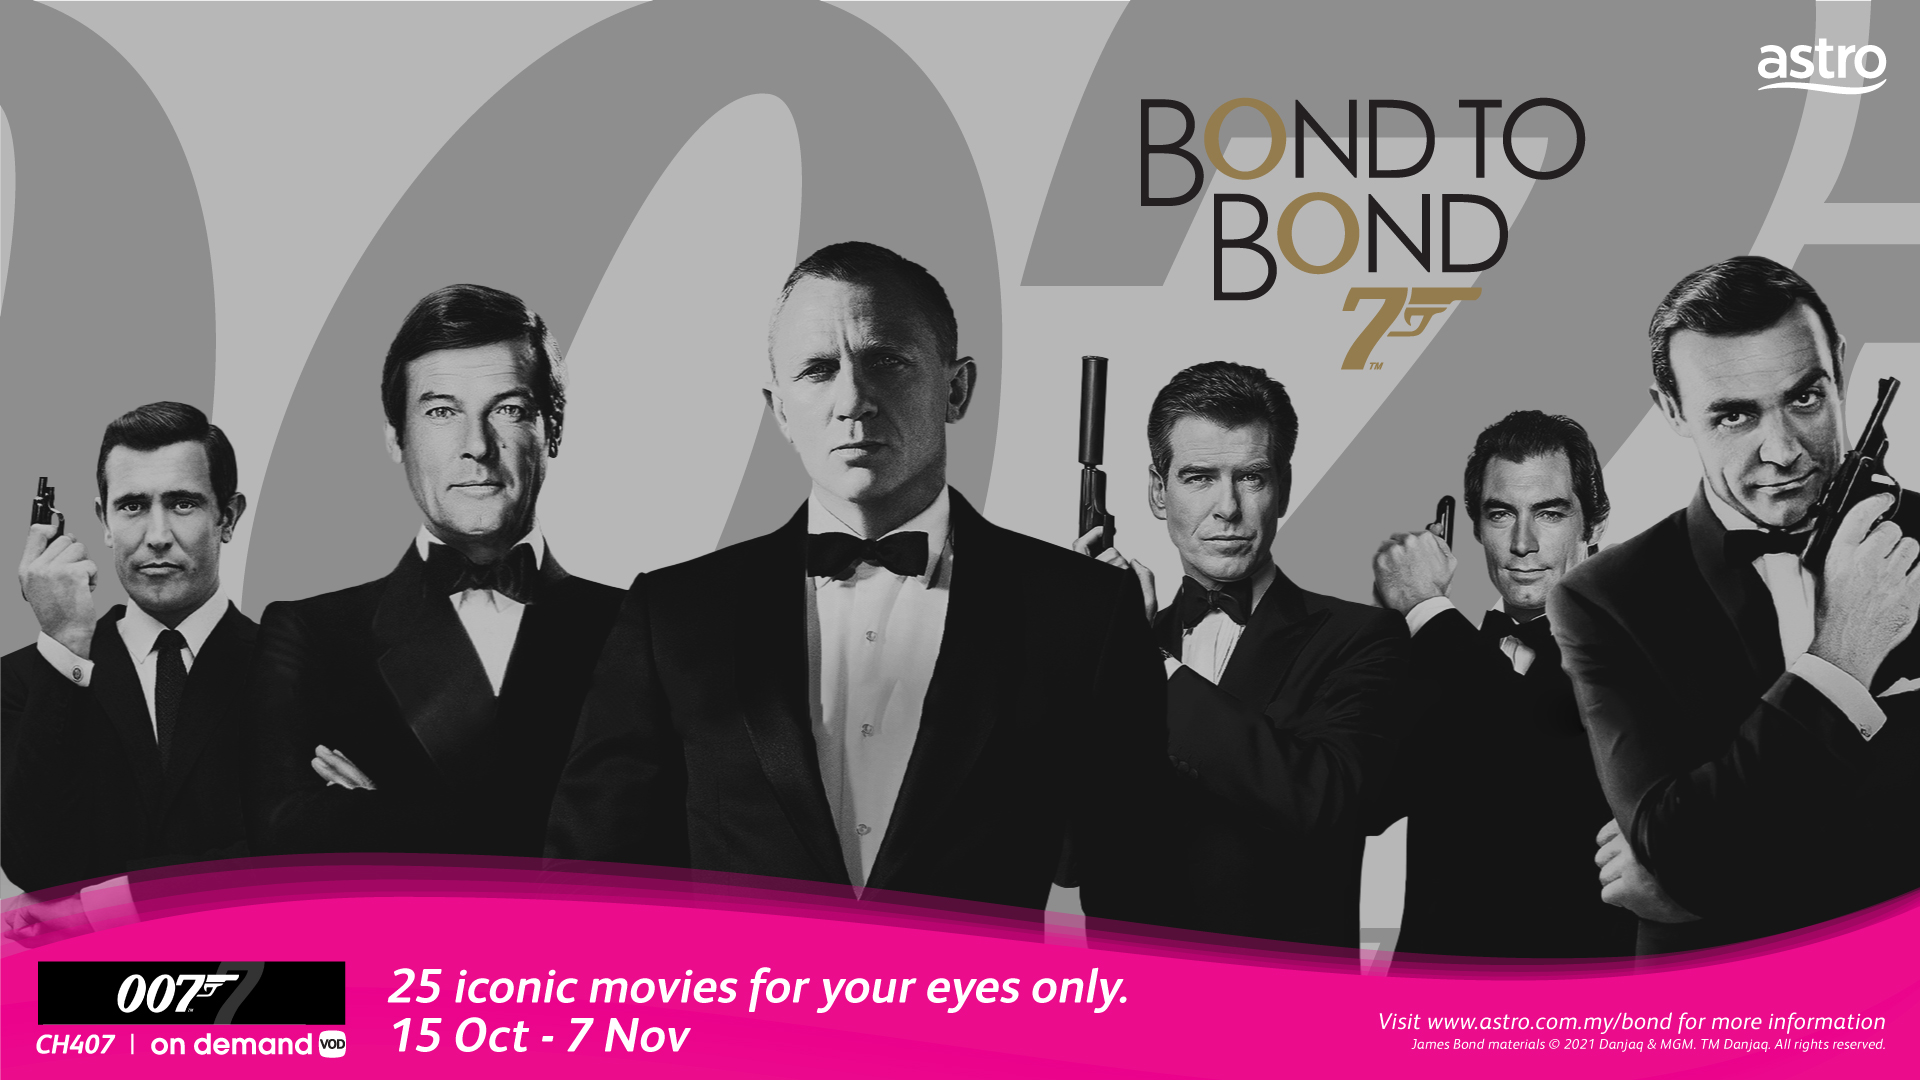 Astro brings collection of 25 iconic James Bond movies